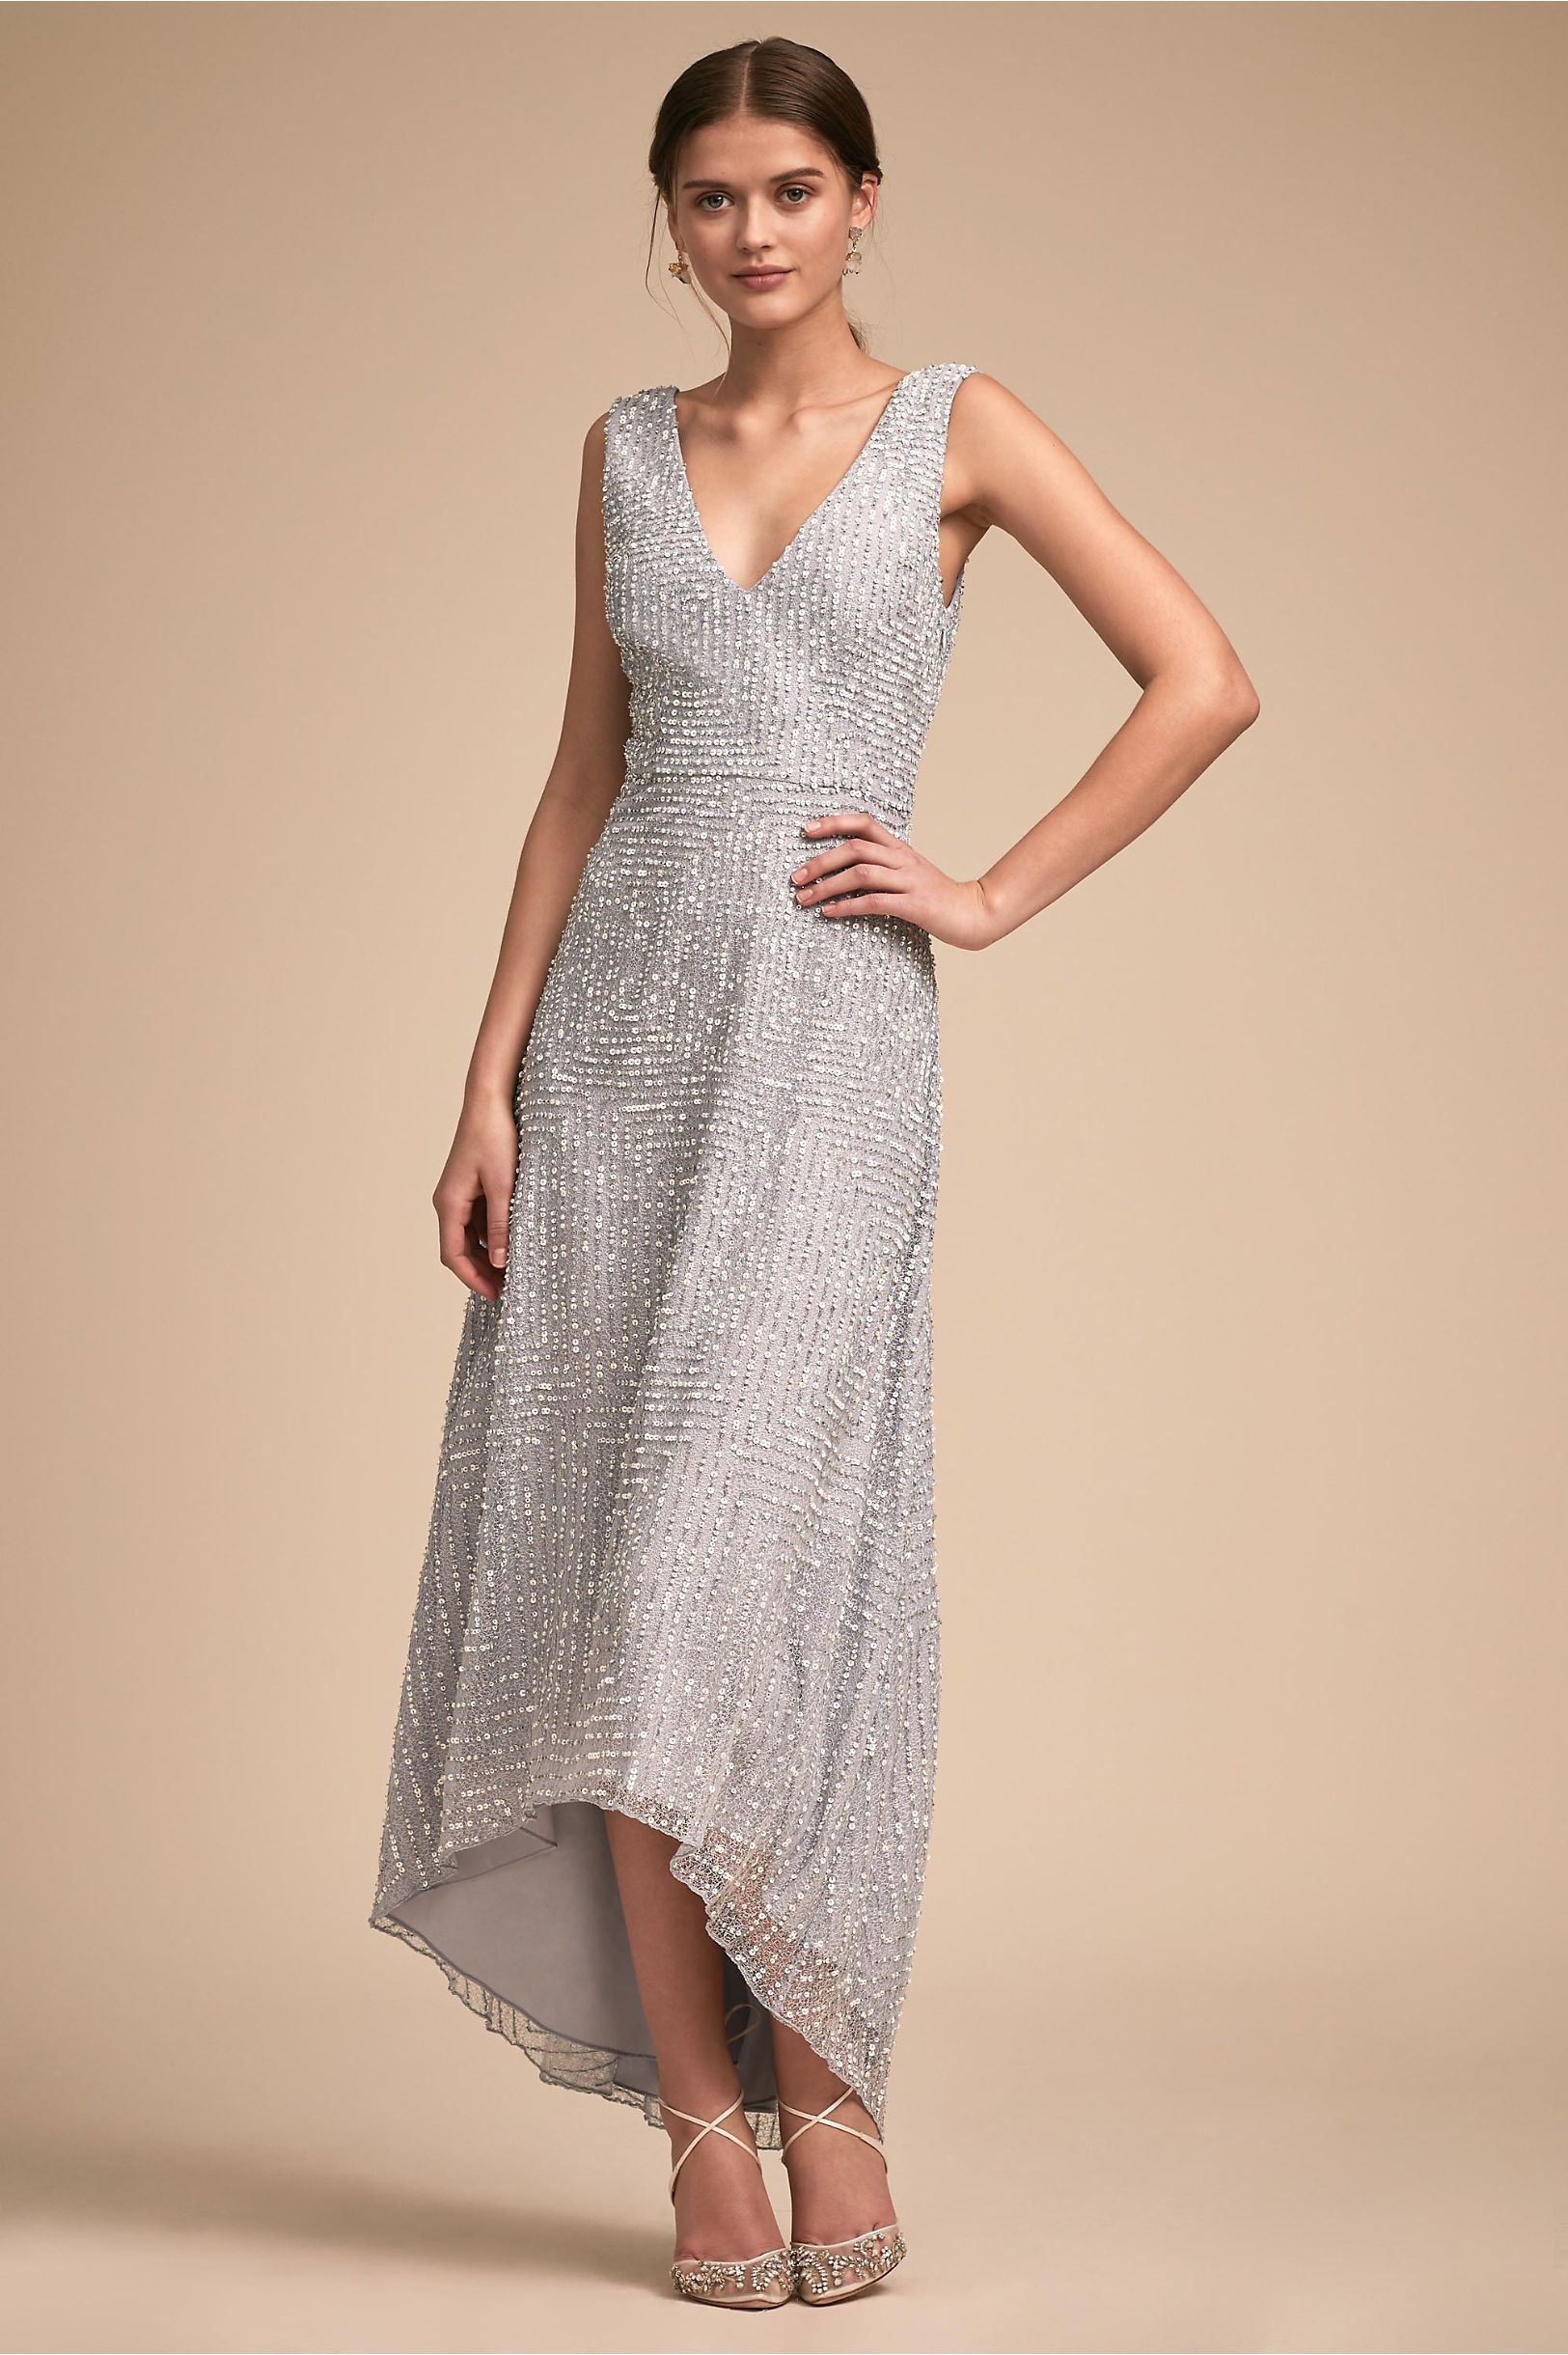 07c29d3c08 BHLDN s Pacific Dress in Blue